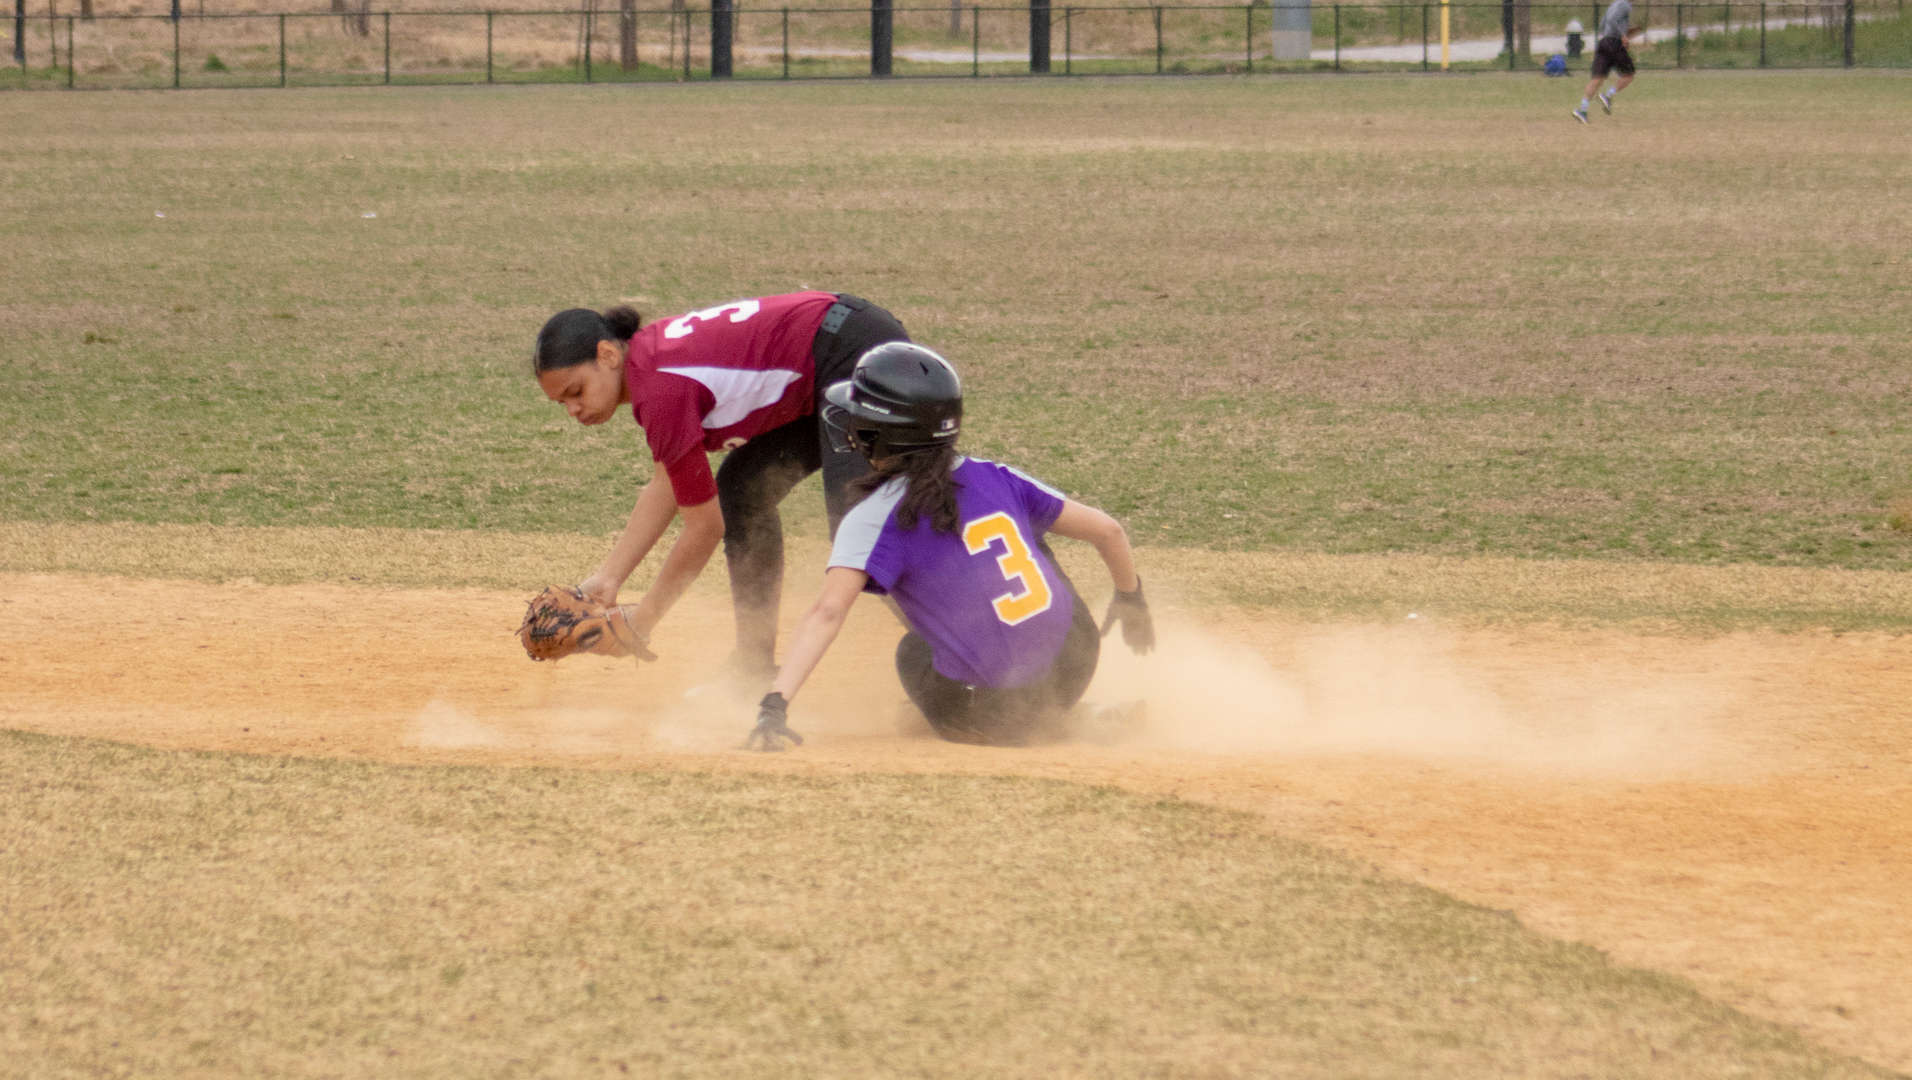 Student made it to second base